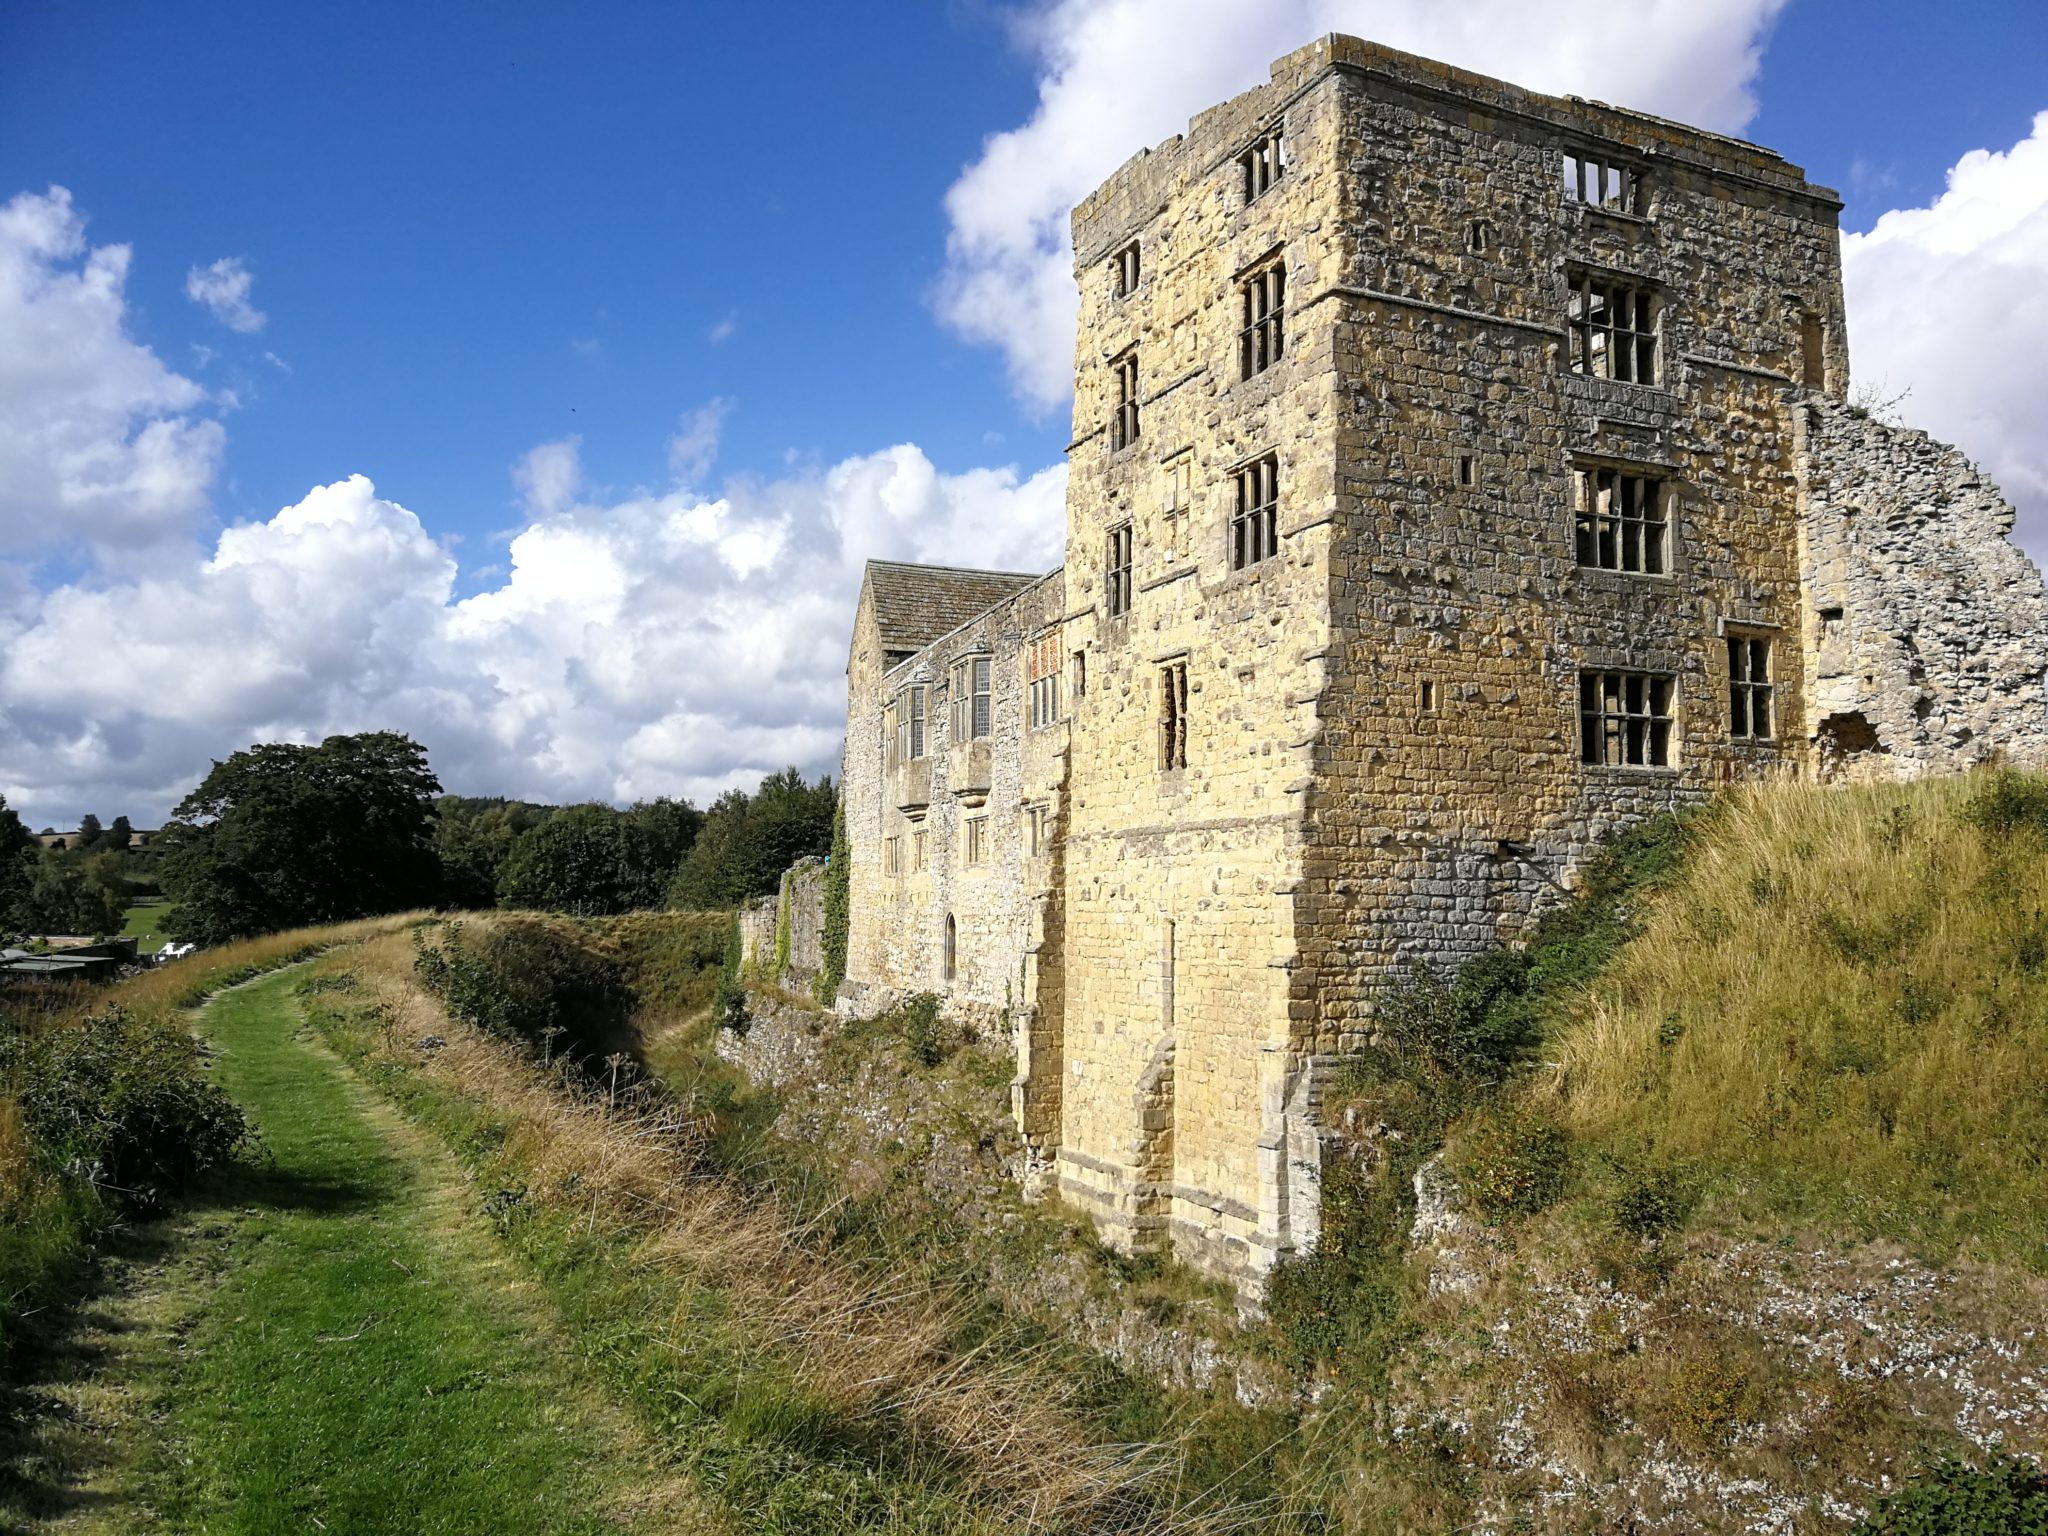 Autumn sunshine at Helmsley Castle near Coxwold